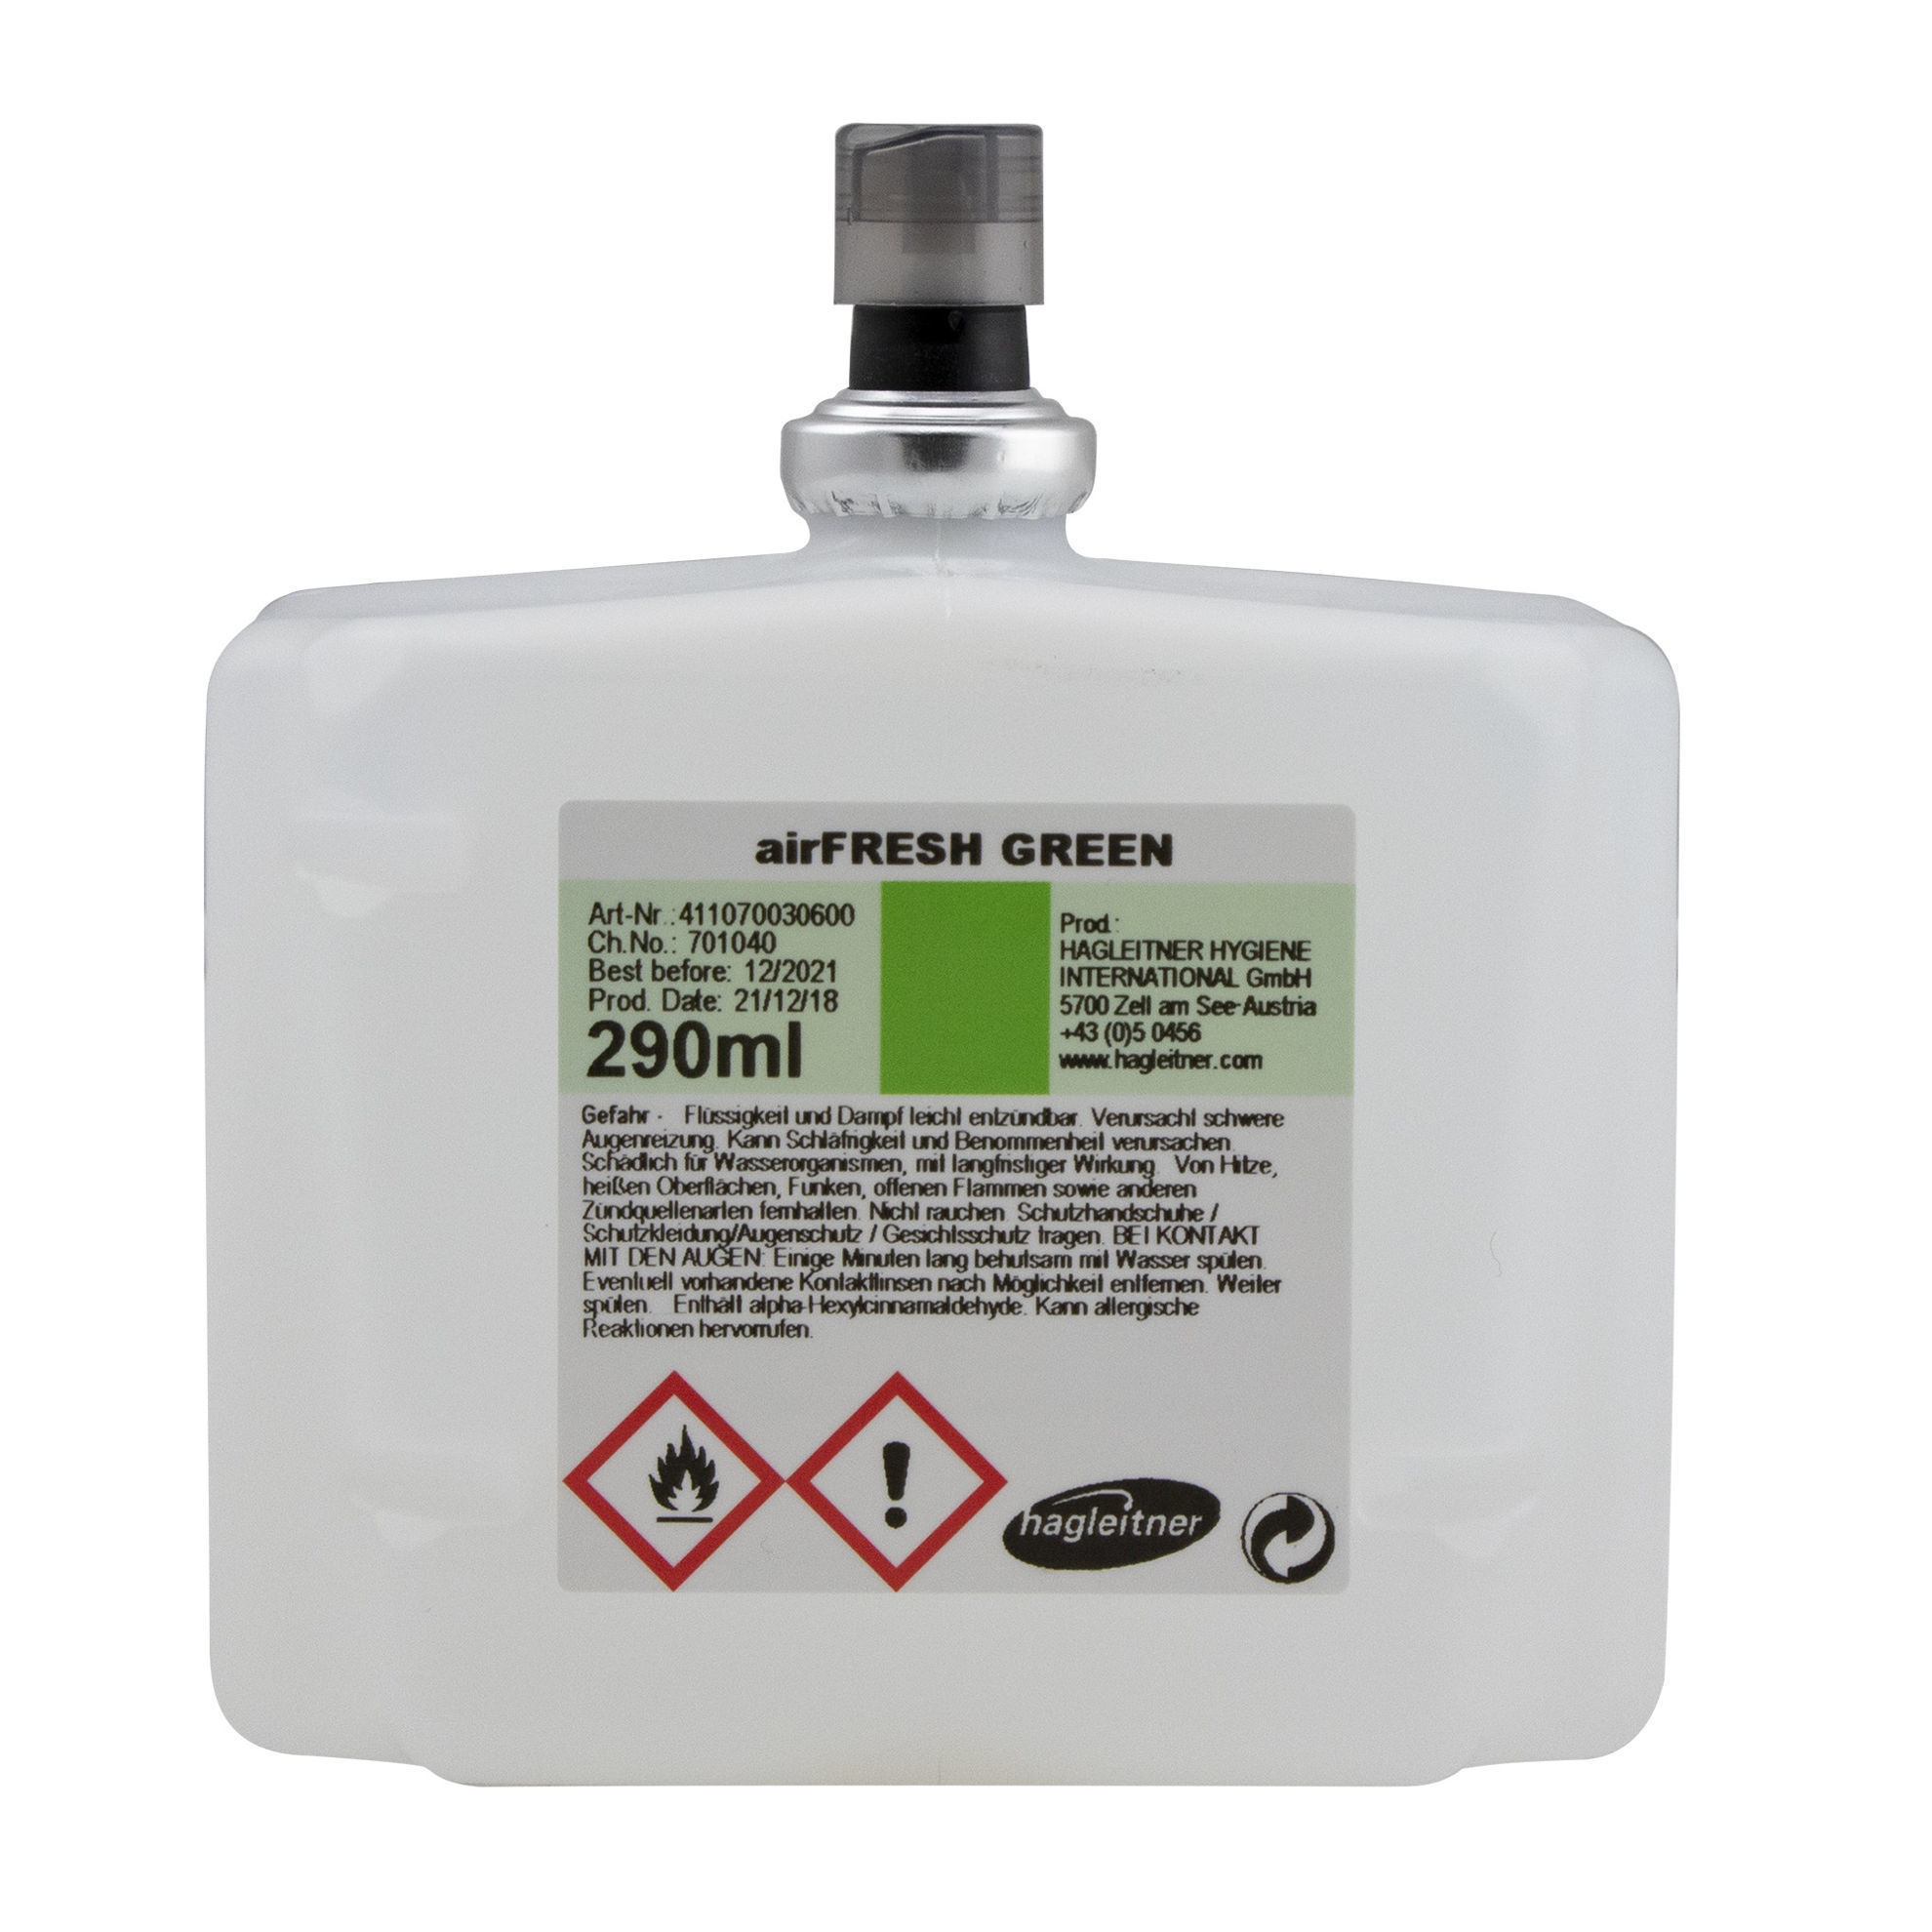 Picture of LUNA airFRESH green 290ml